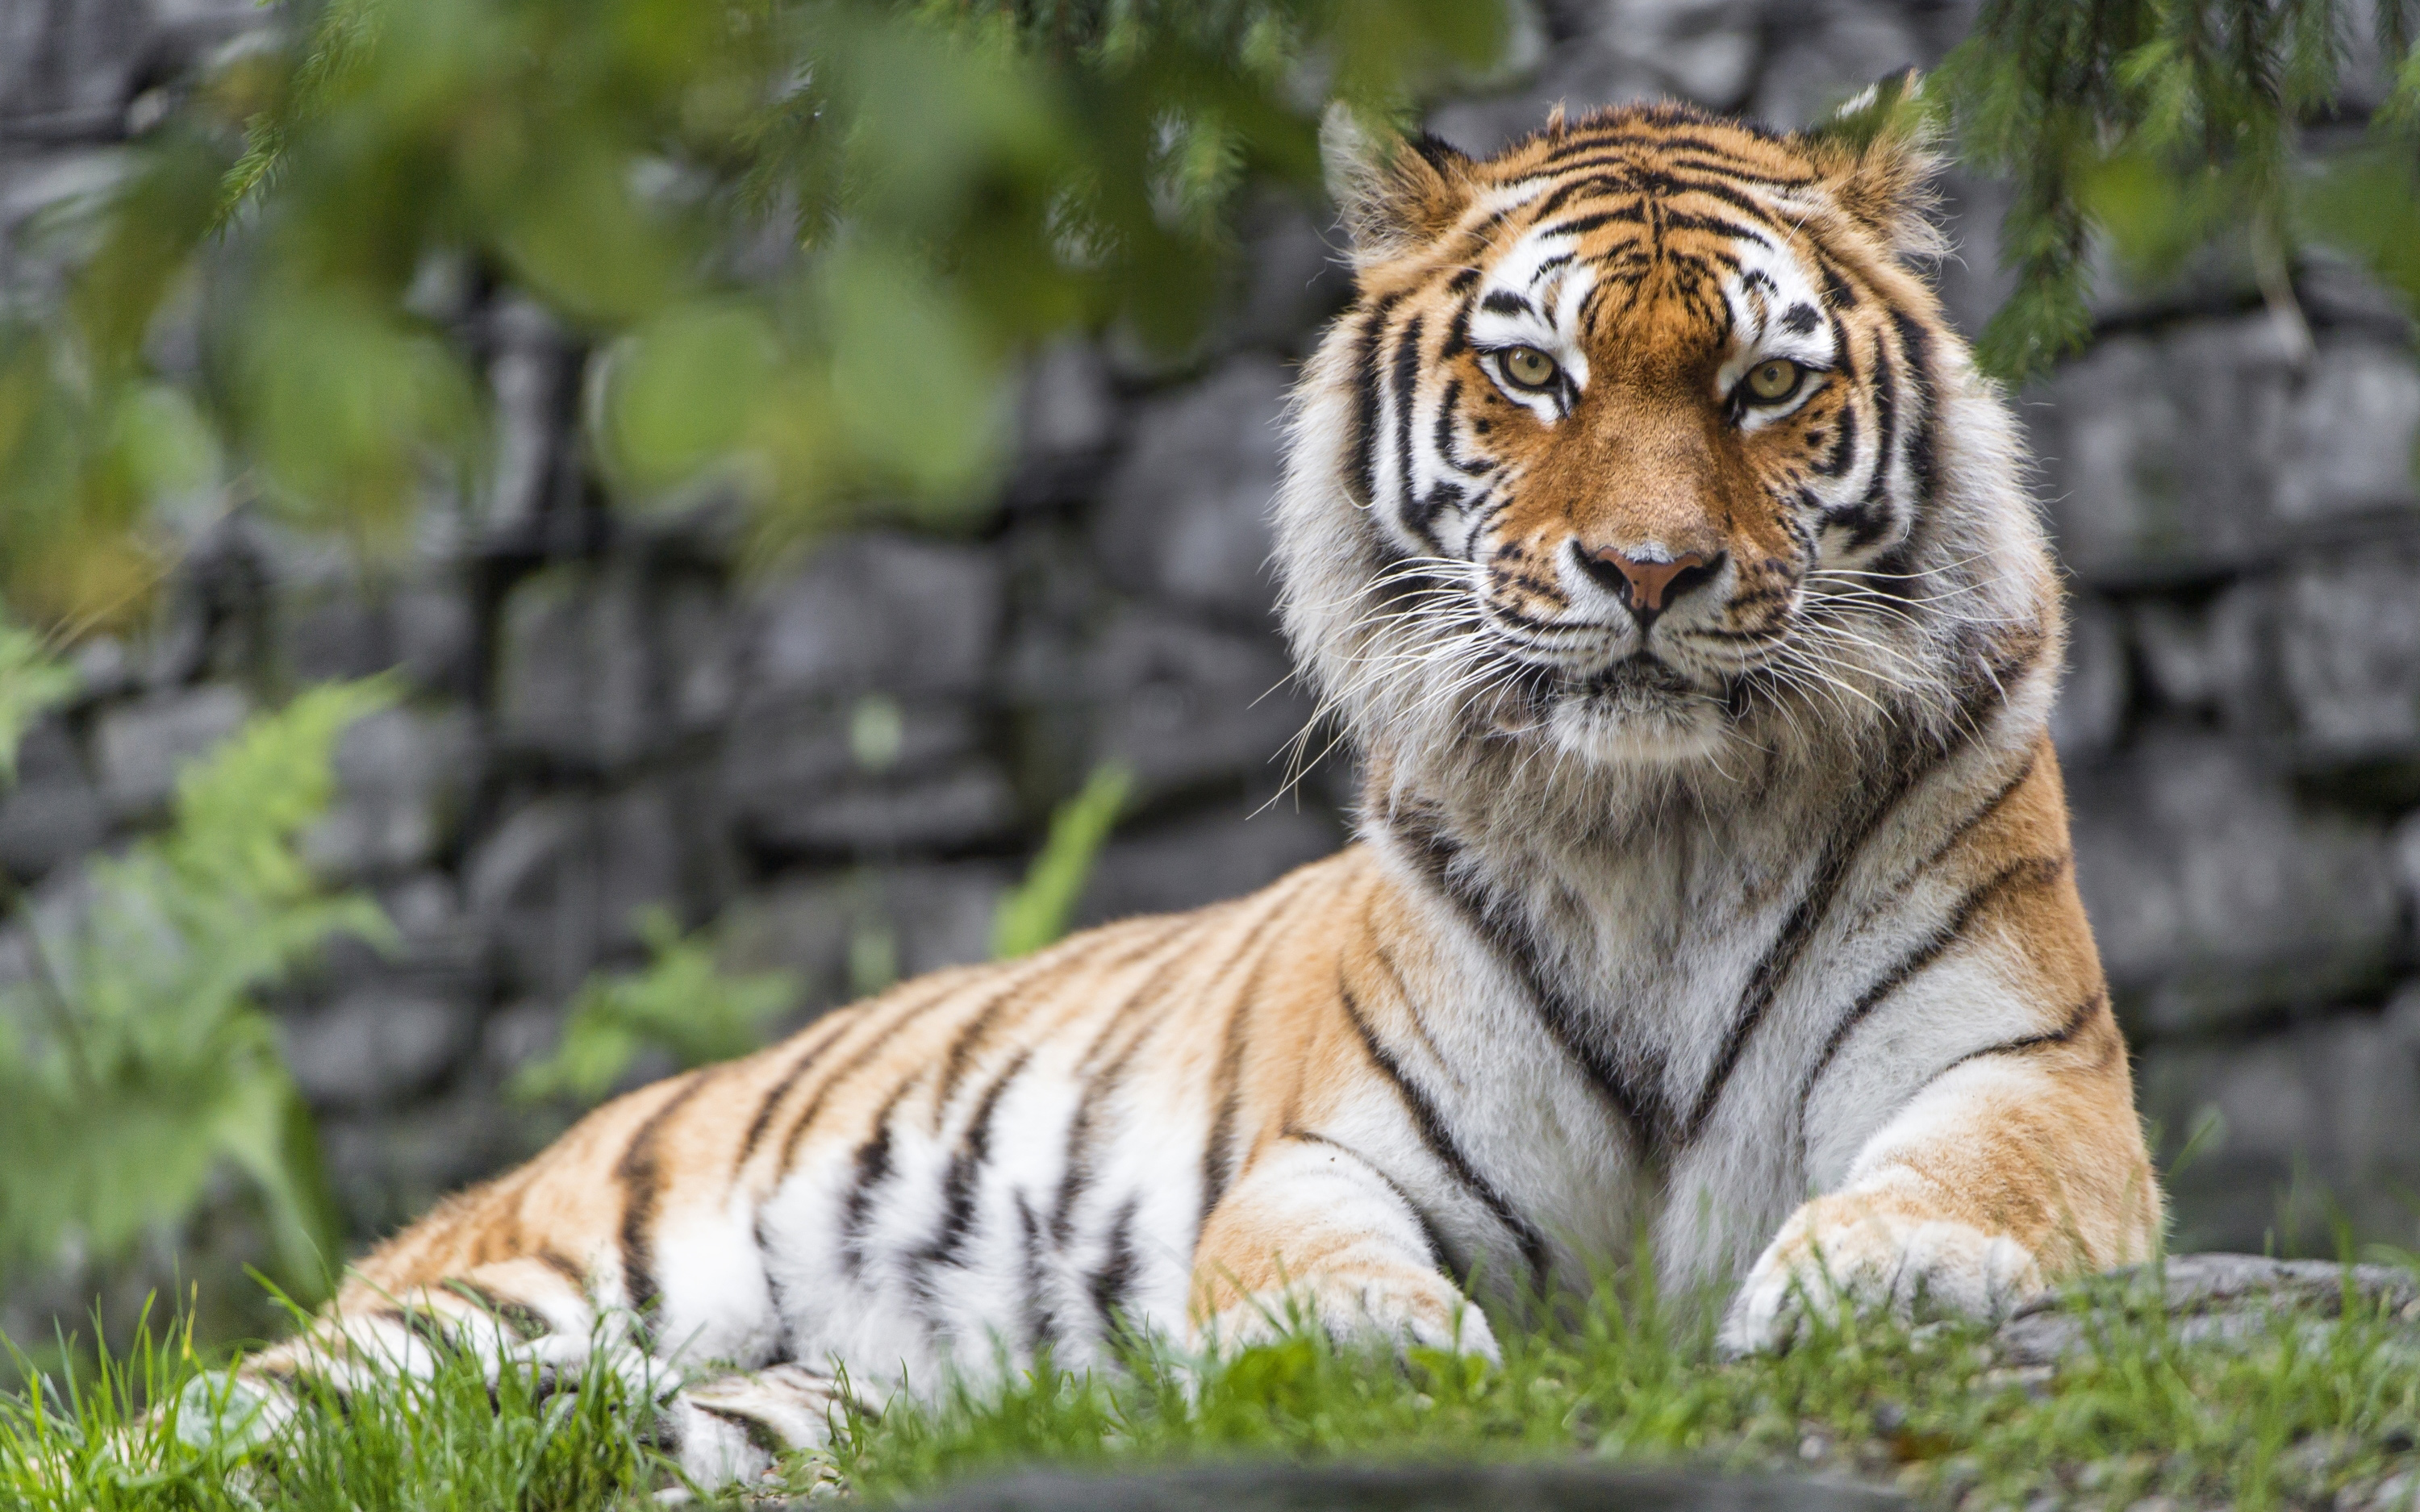 Zoo Tiger931589218 - Zoo Tiger - Zoo, Tiger, Leopard